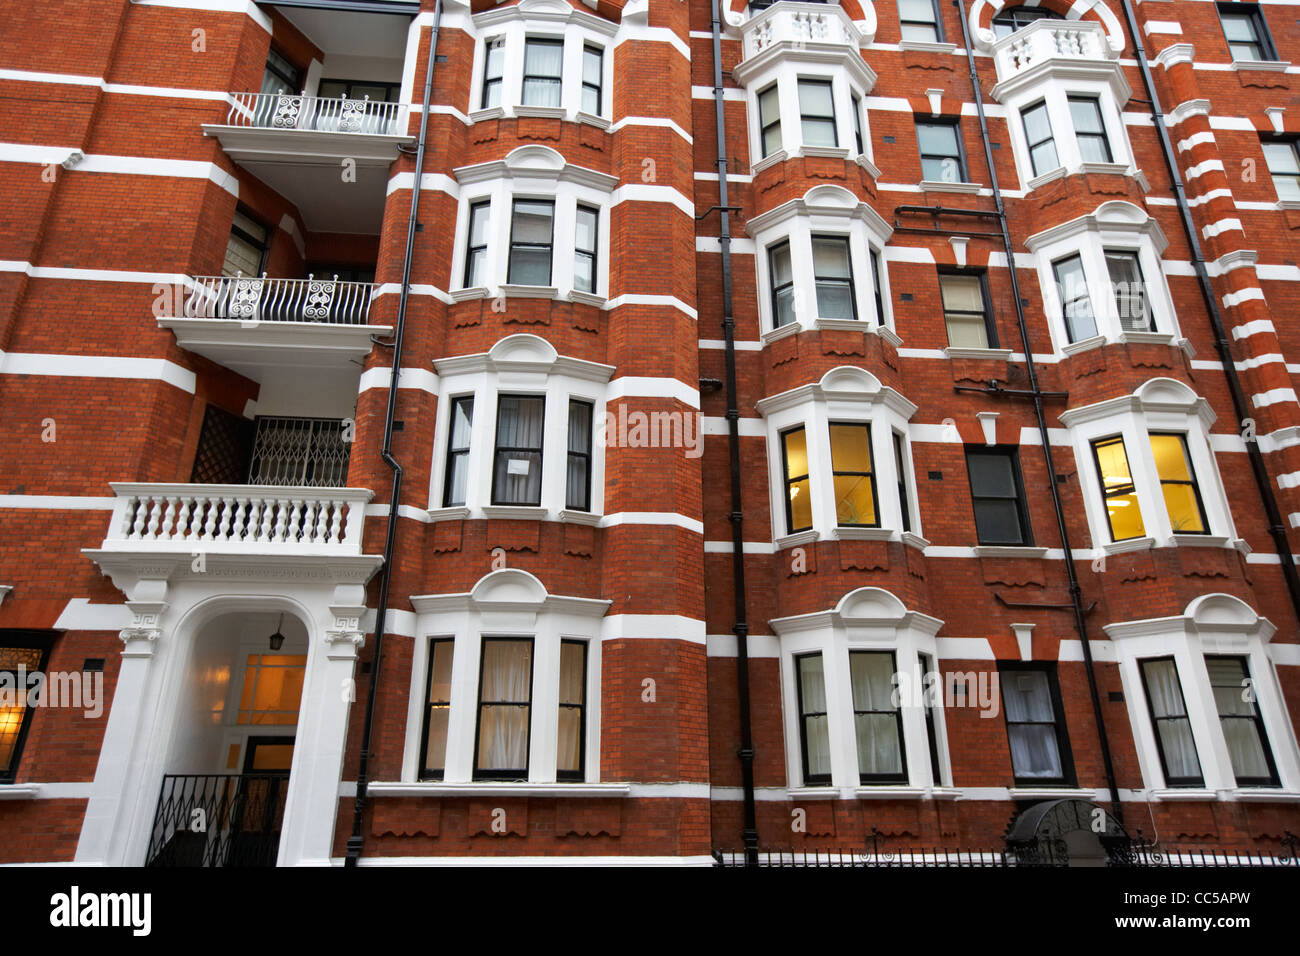 basil street kensington and chelsea London England UK United kingdom - Stock Image